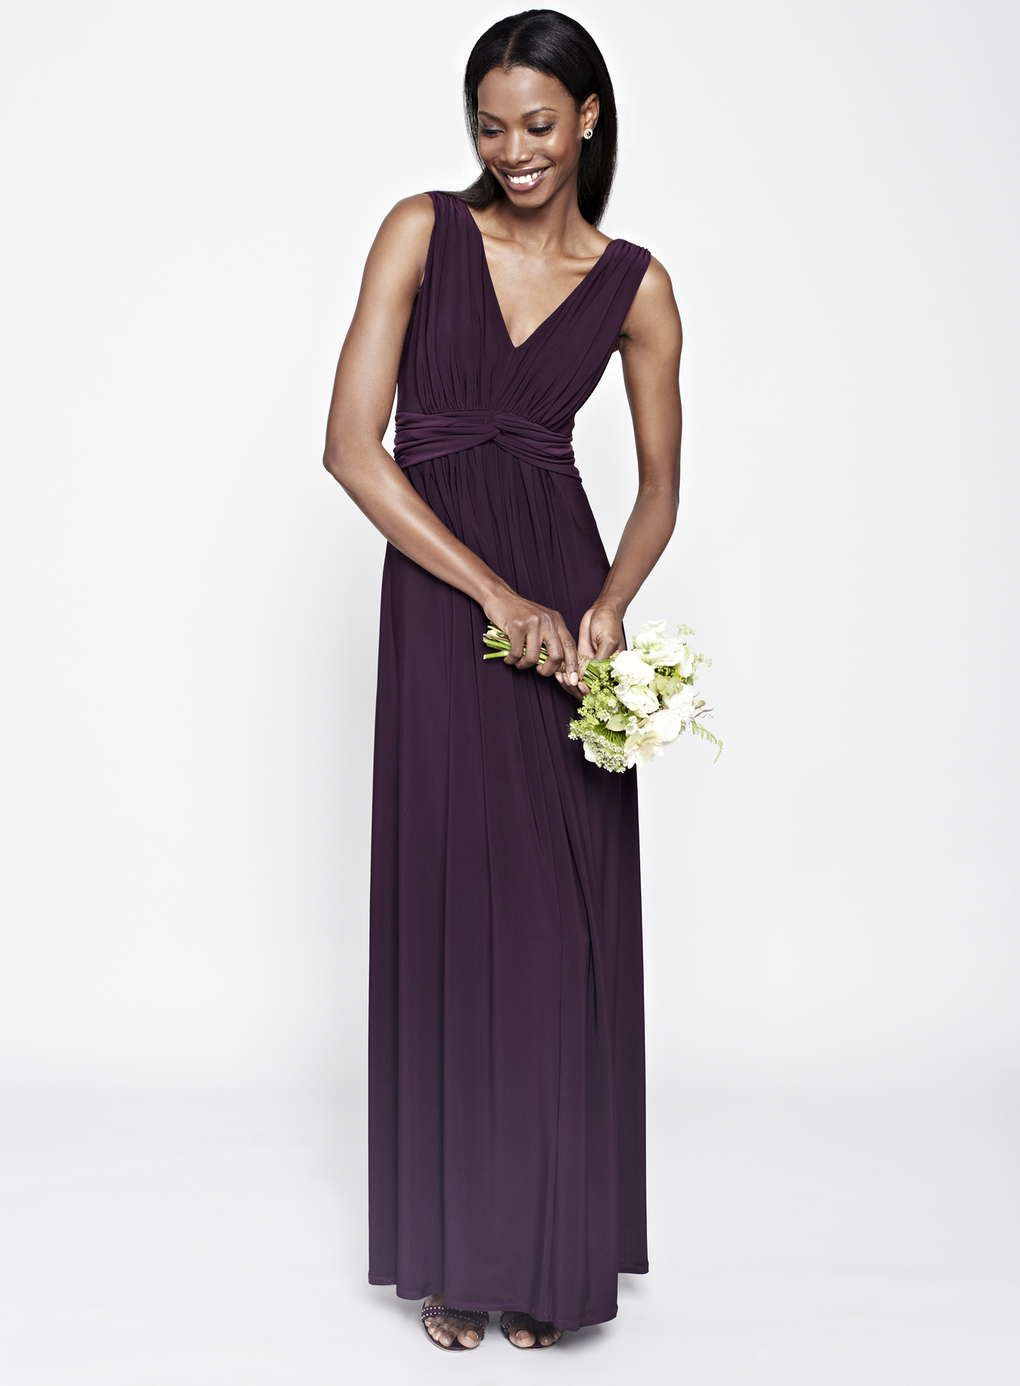 Merlot Annabel Long Bridesmaid Dress http://www.weddingheart.co.uk ...